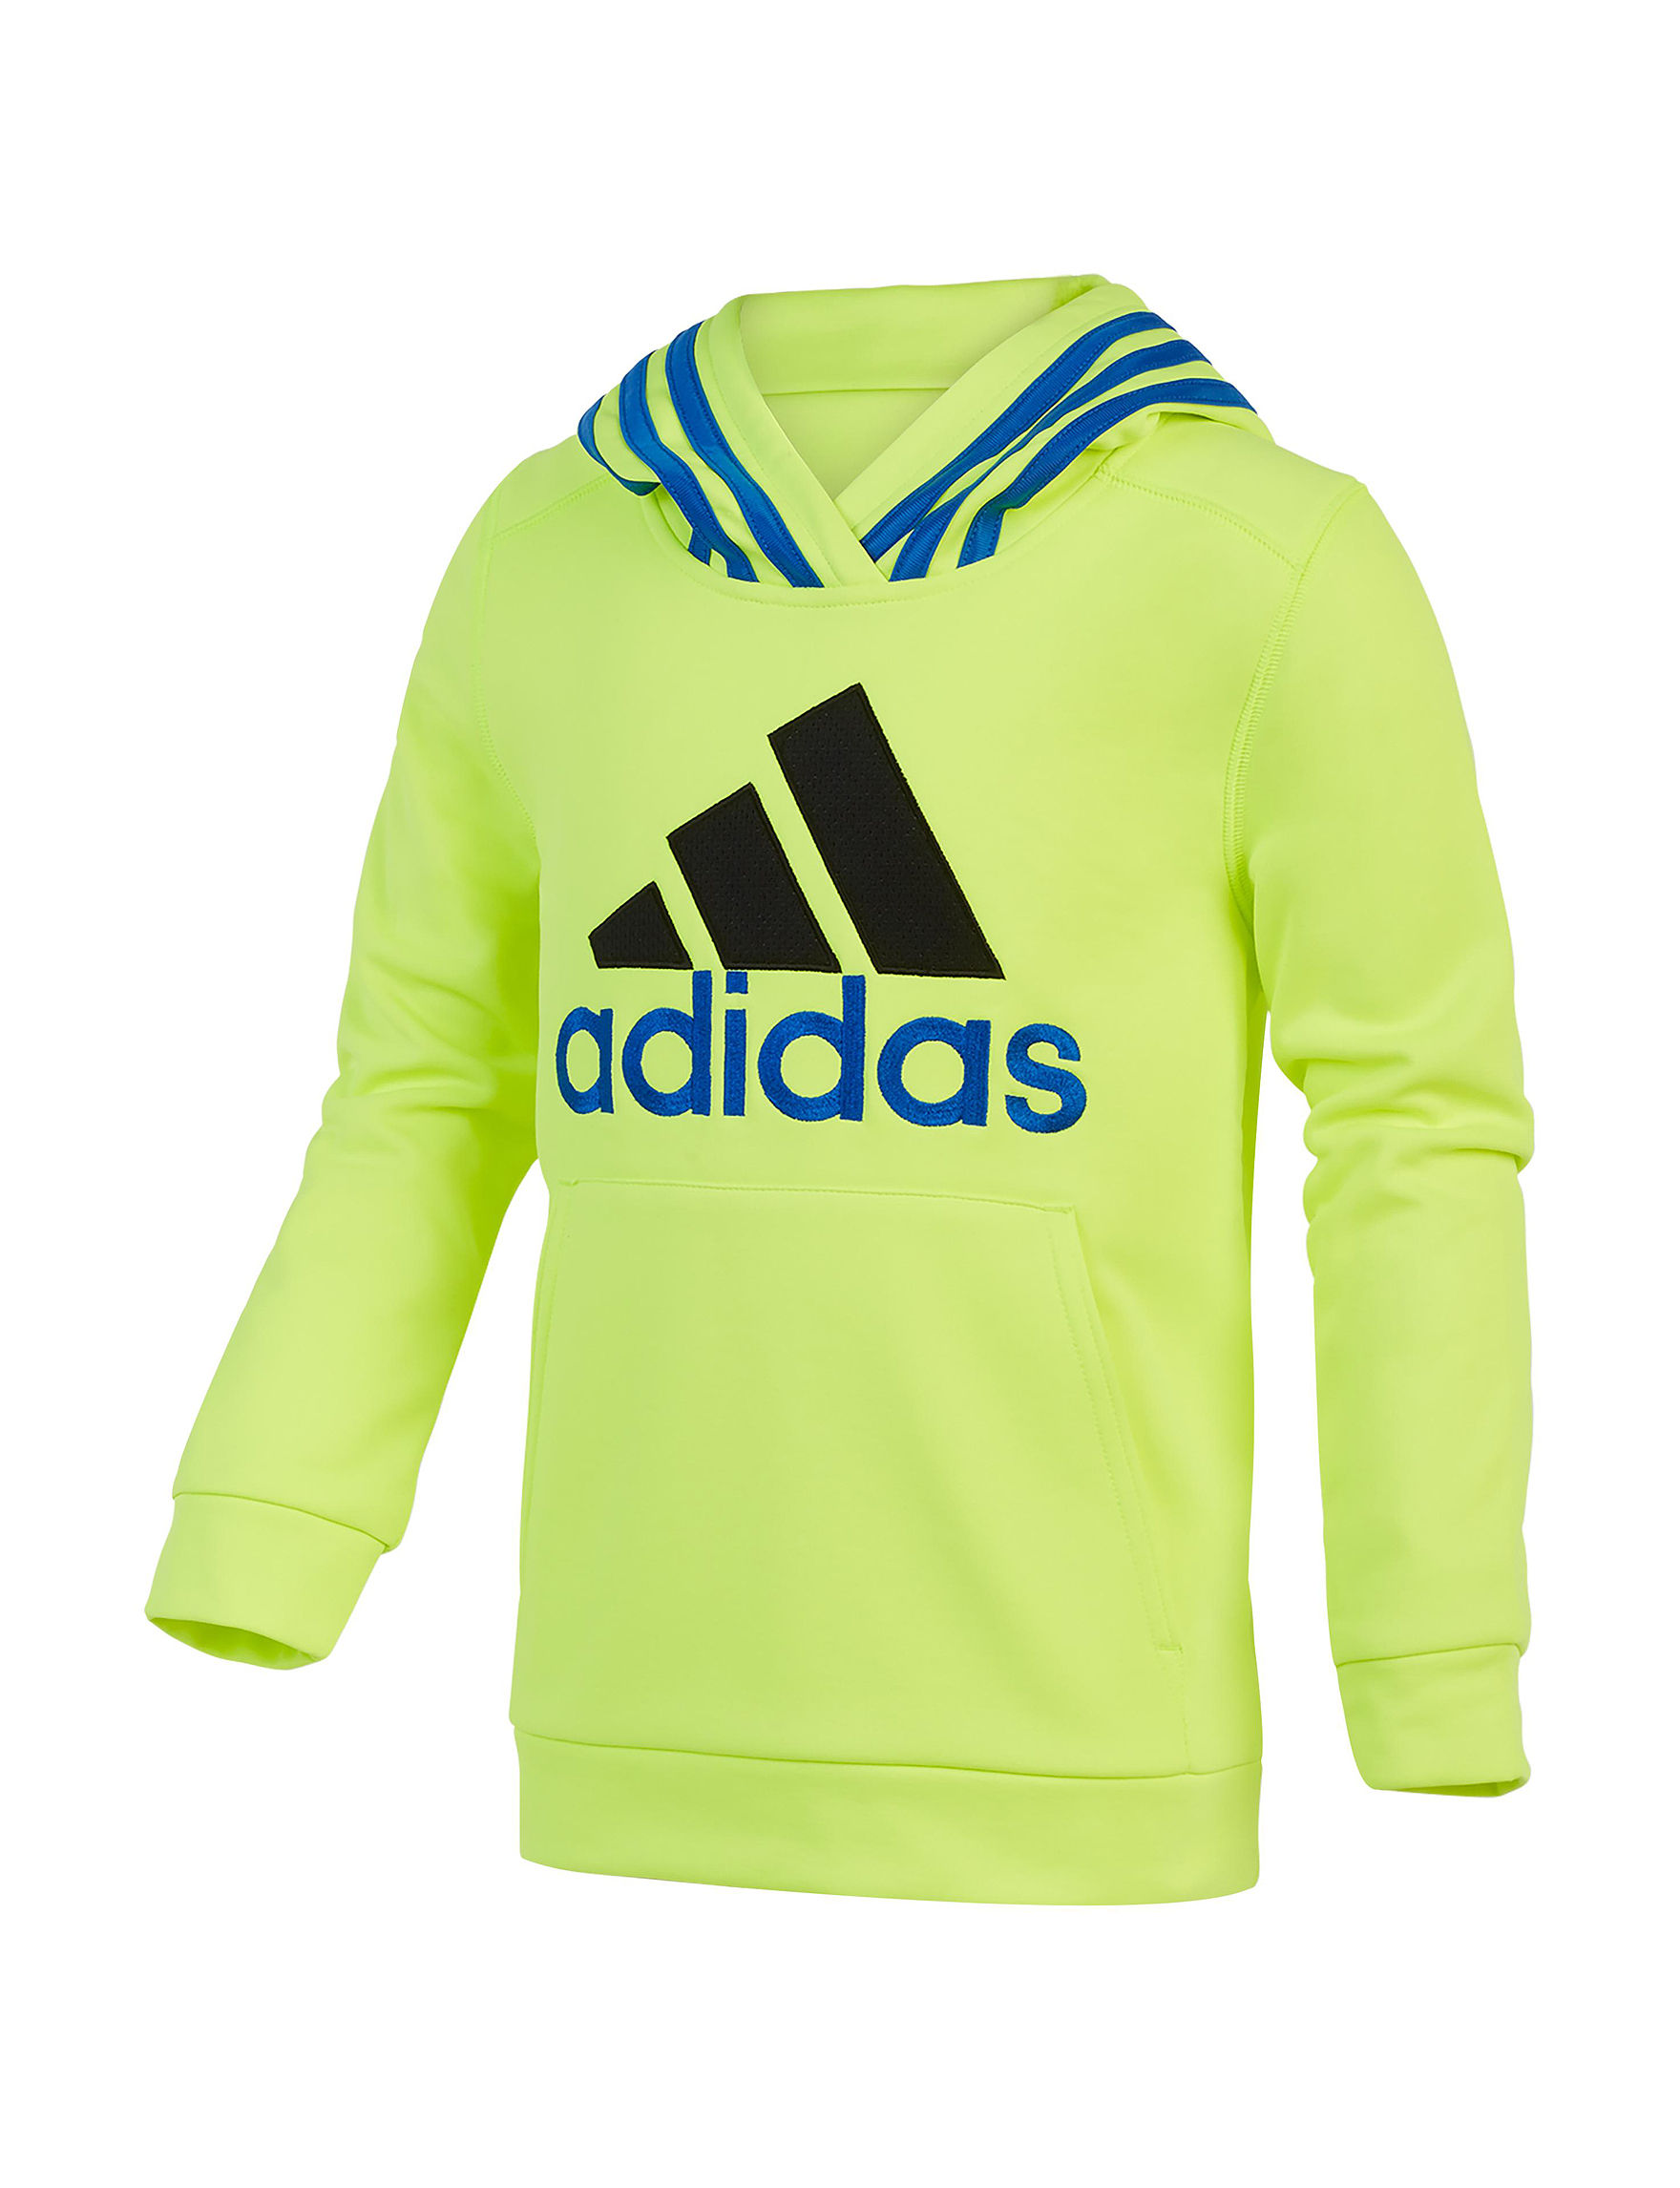 Adidas Yellow Pull-overs